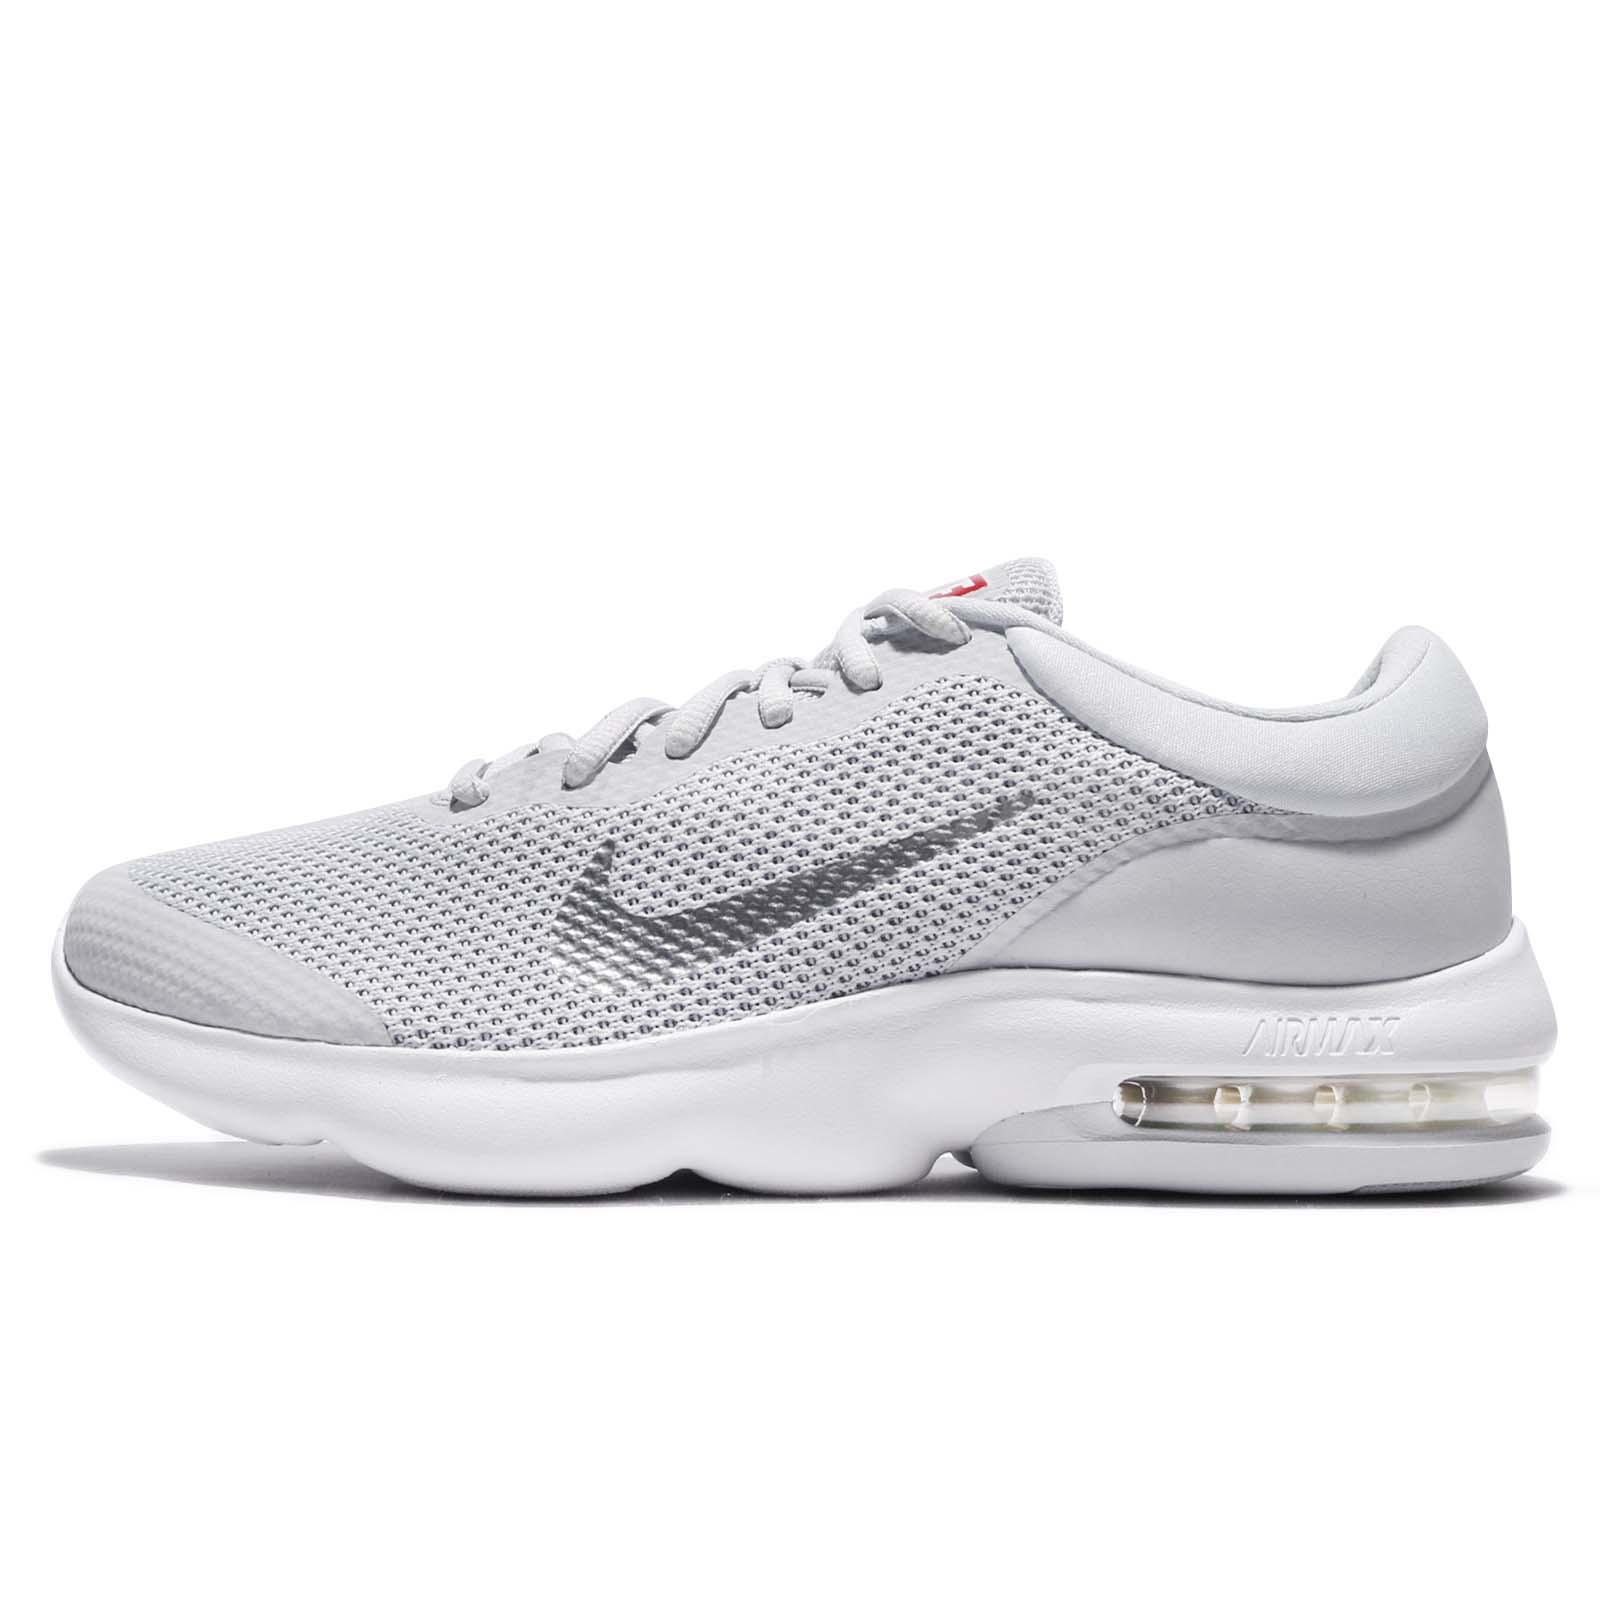 34dab5c592e8e ... Nike Air Max Advantage Pure Platinum White Men Running Shoes Trainers  908981-006 ...